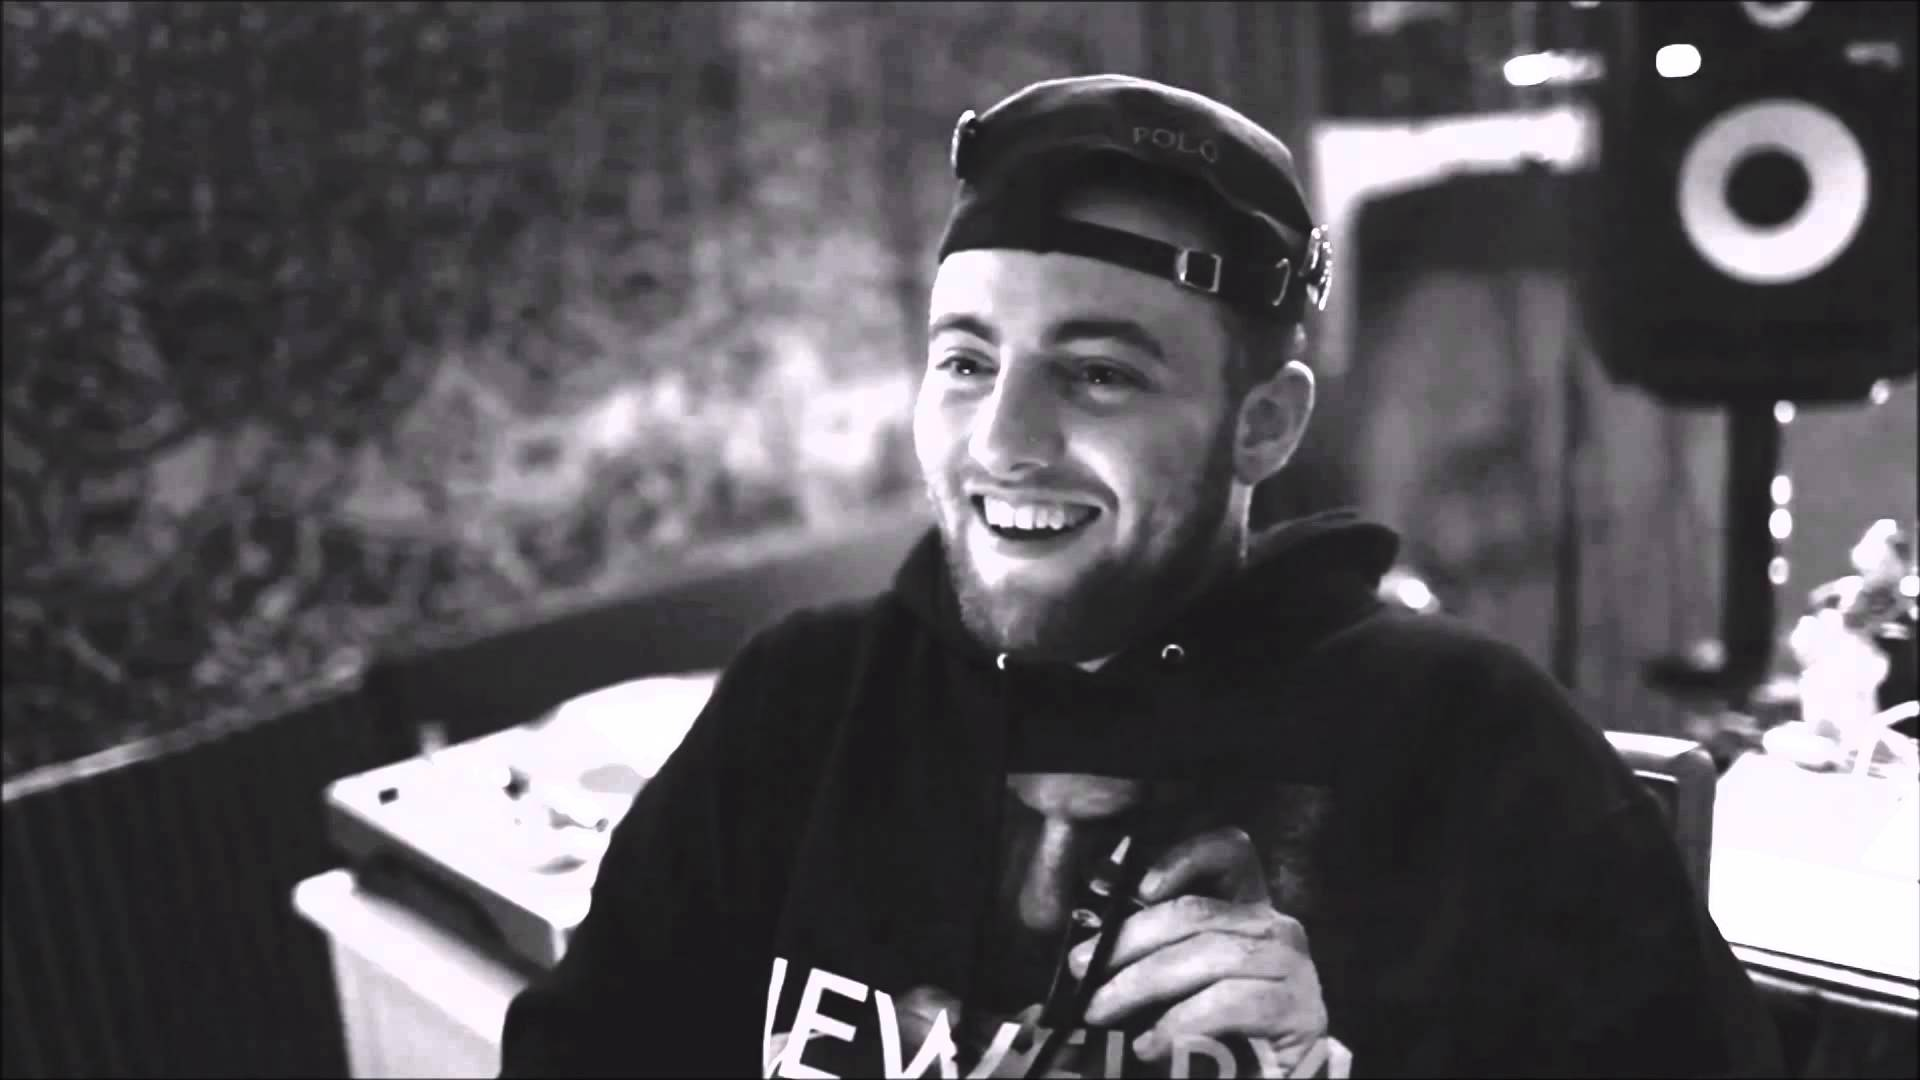 macmiller_whatstheuse2